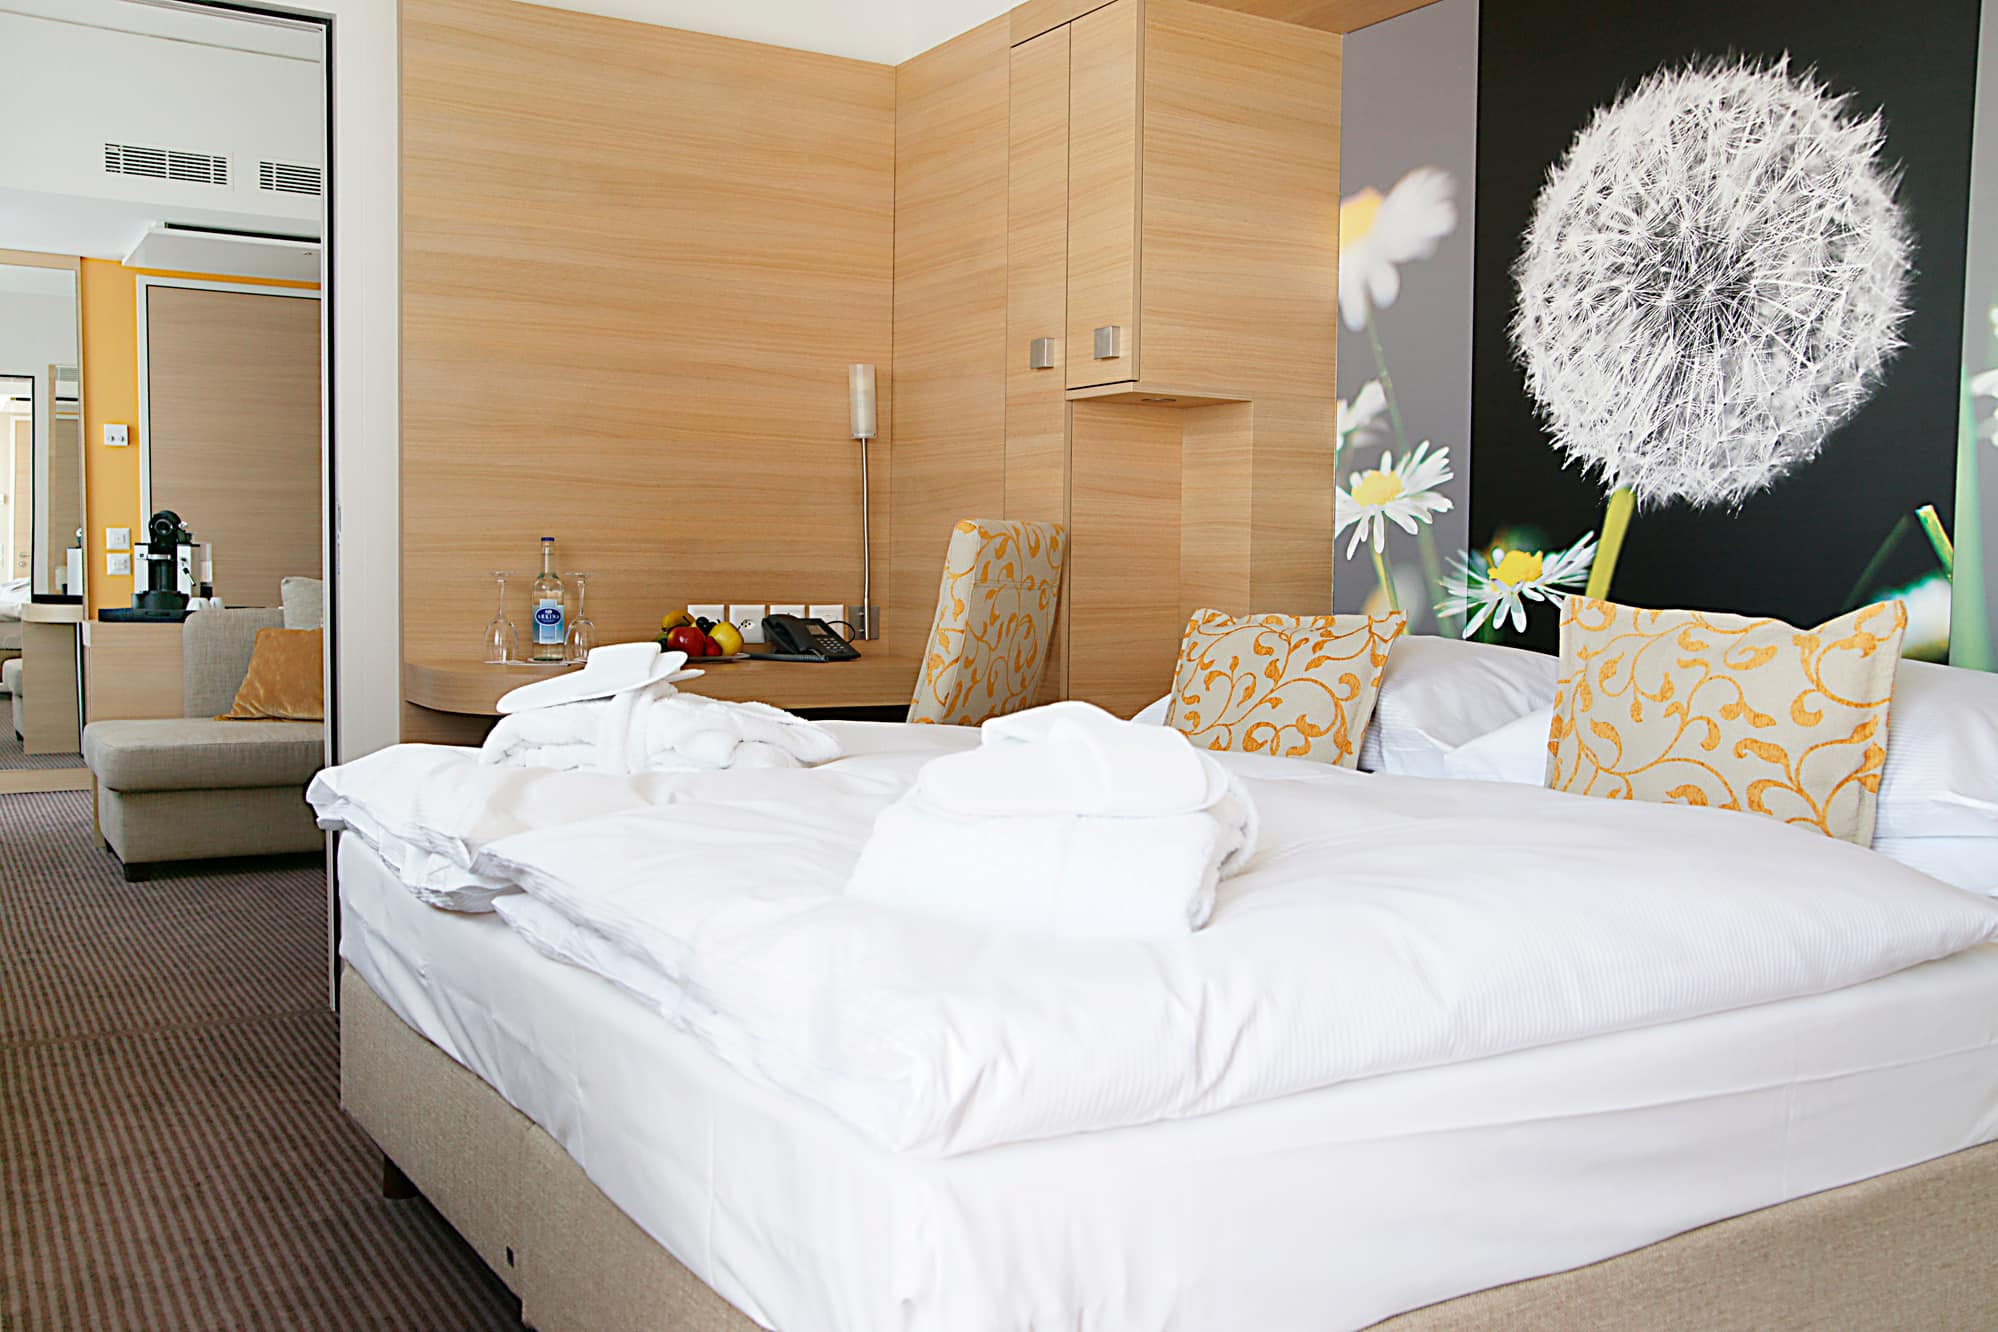 Guest room at the H+ Hotel Zurich in Zurich, Other than US/Canada